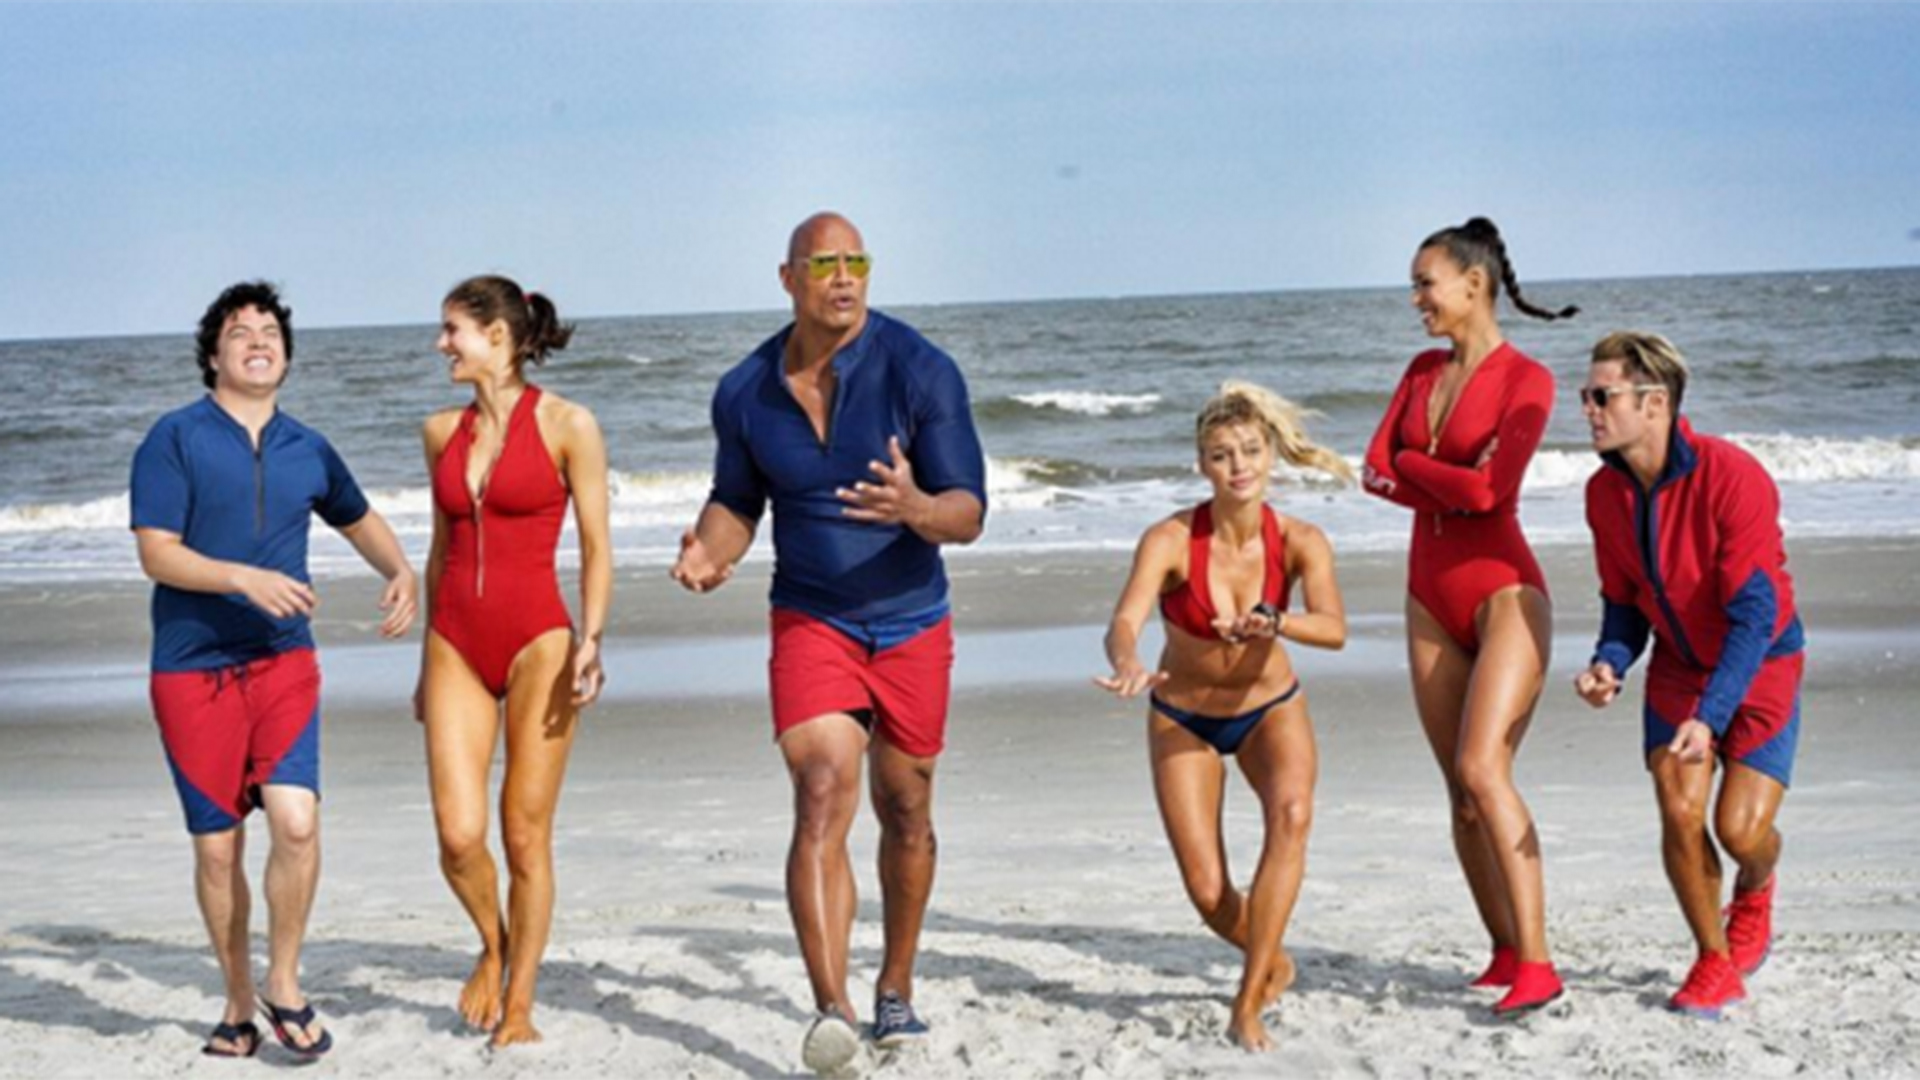 baywatch stars are on duty see dwayne the rock johnson